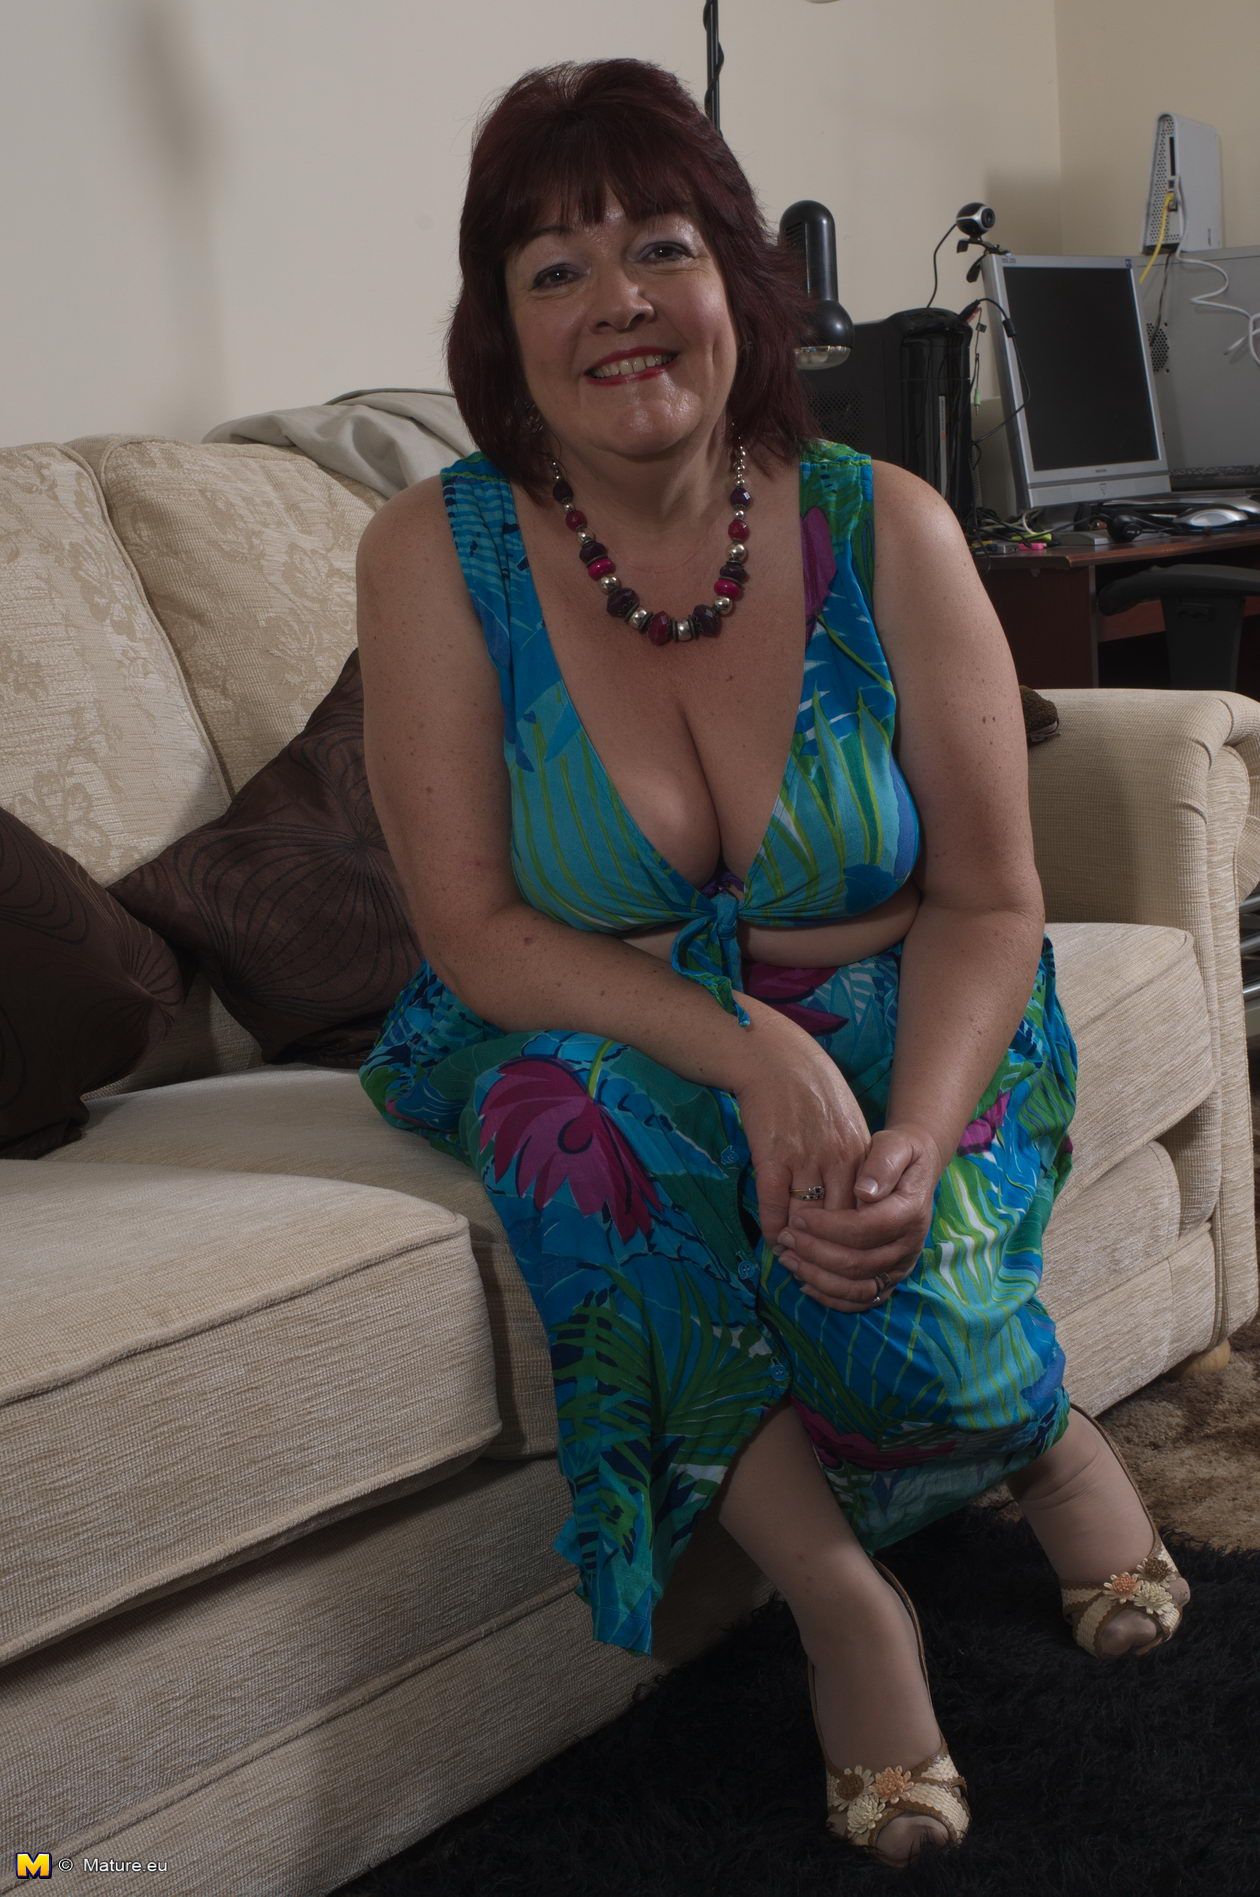 Brittney ,a  wet granny who likes to practise very soft finger sex